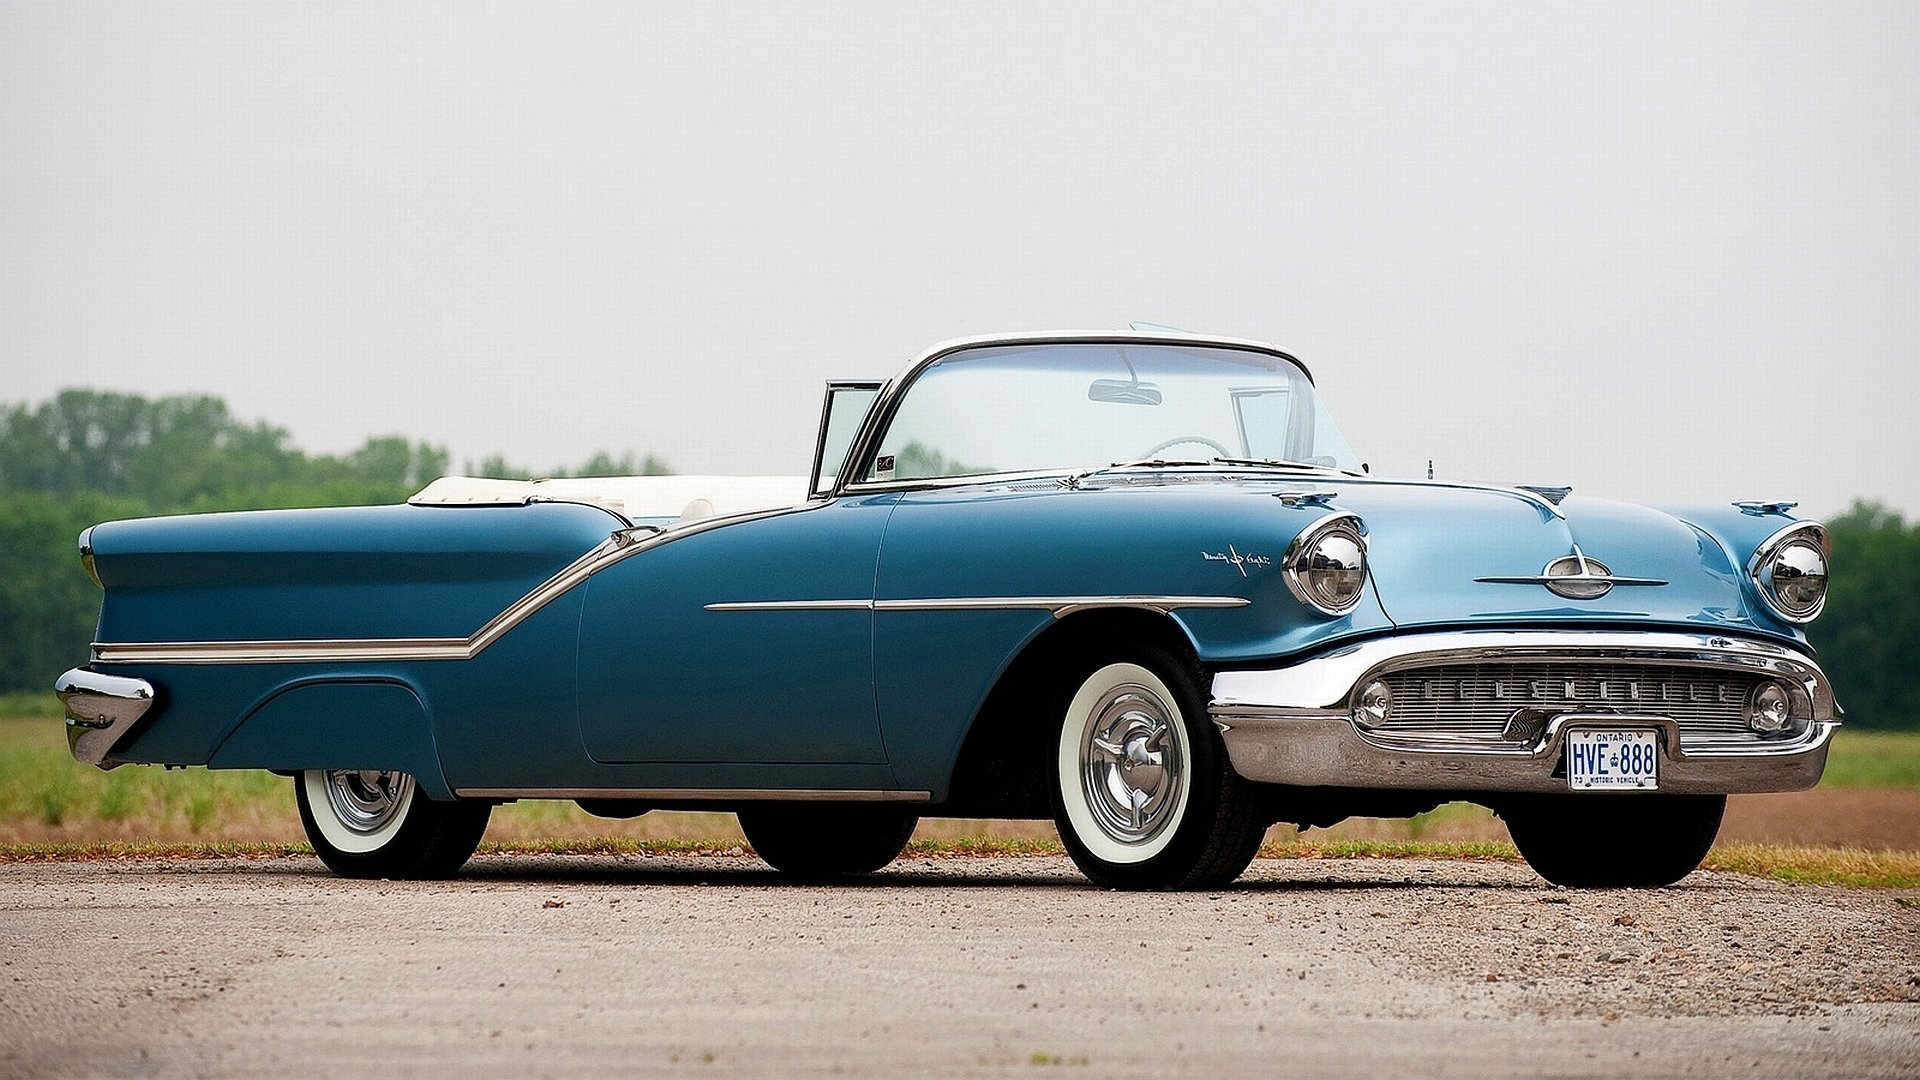 Latest Oldsmobile Full Hd Wallpaper And Background Image Free Download